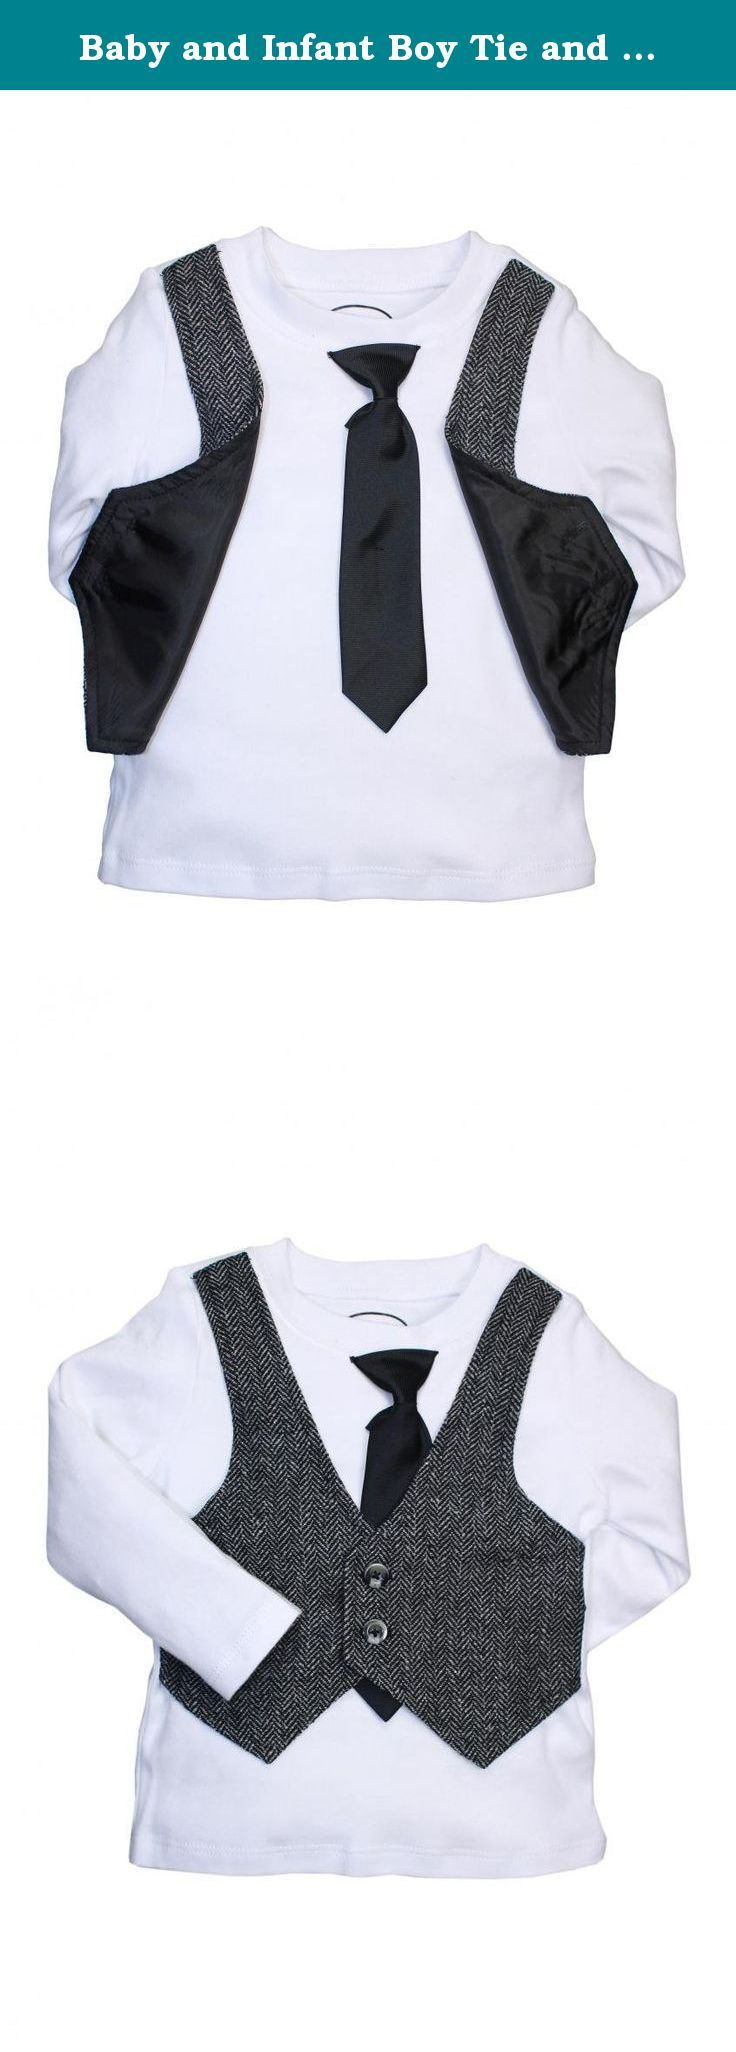 Baby and Infant Boy Tie and Herringbone Vest Dress Up Long Sleeve T-Shirt by Blume - White - 18 Mths. Baby and toddler boy tie and herringbone vest dress up long sleeve t-shirt. The tie and vest are attached to the shirt, makes dressing up your toddler or baby a breeze or just keeping your little guy styling all the time.